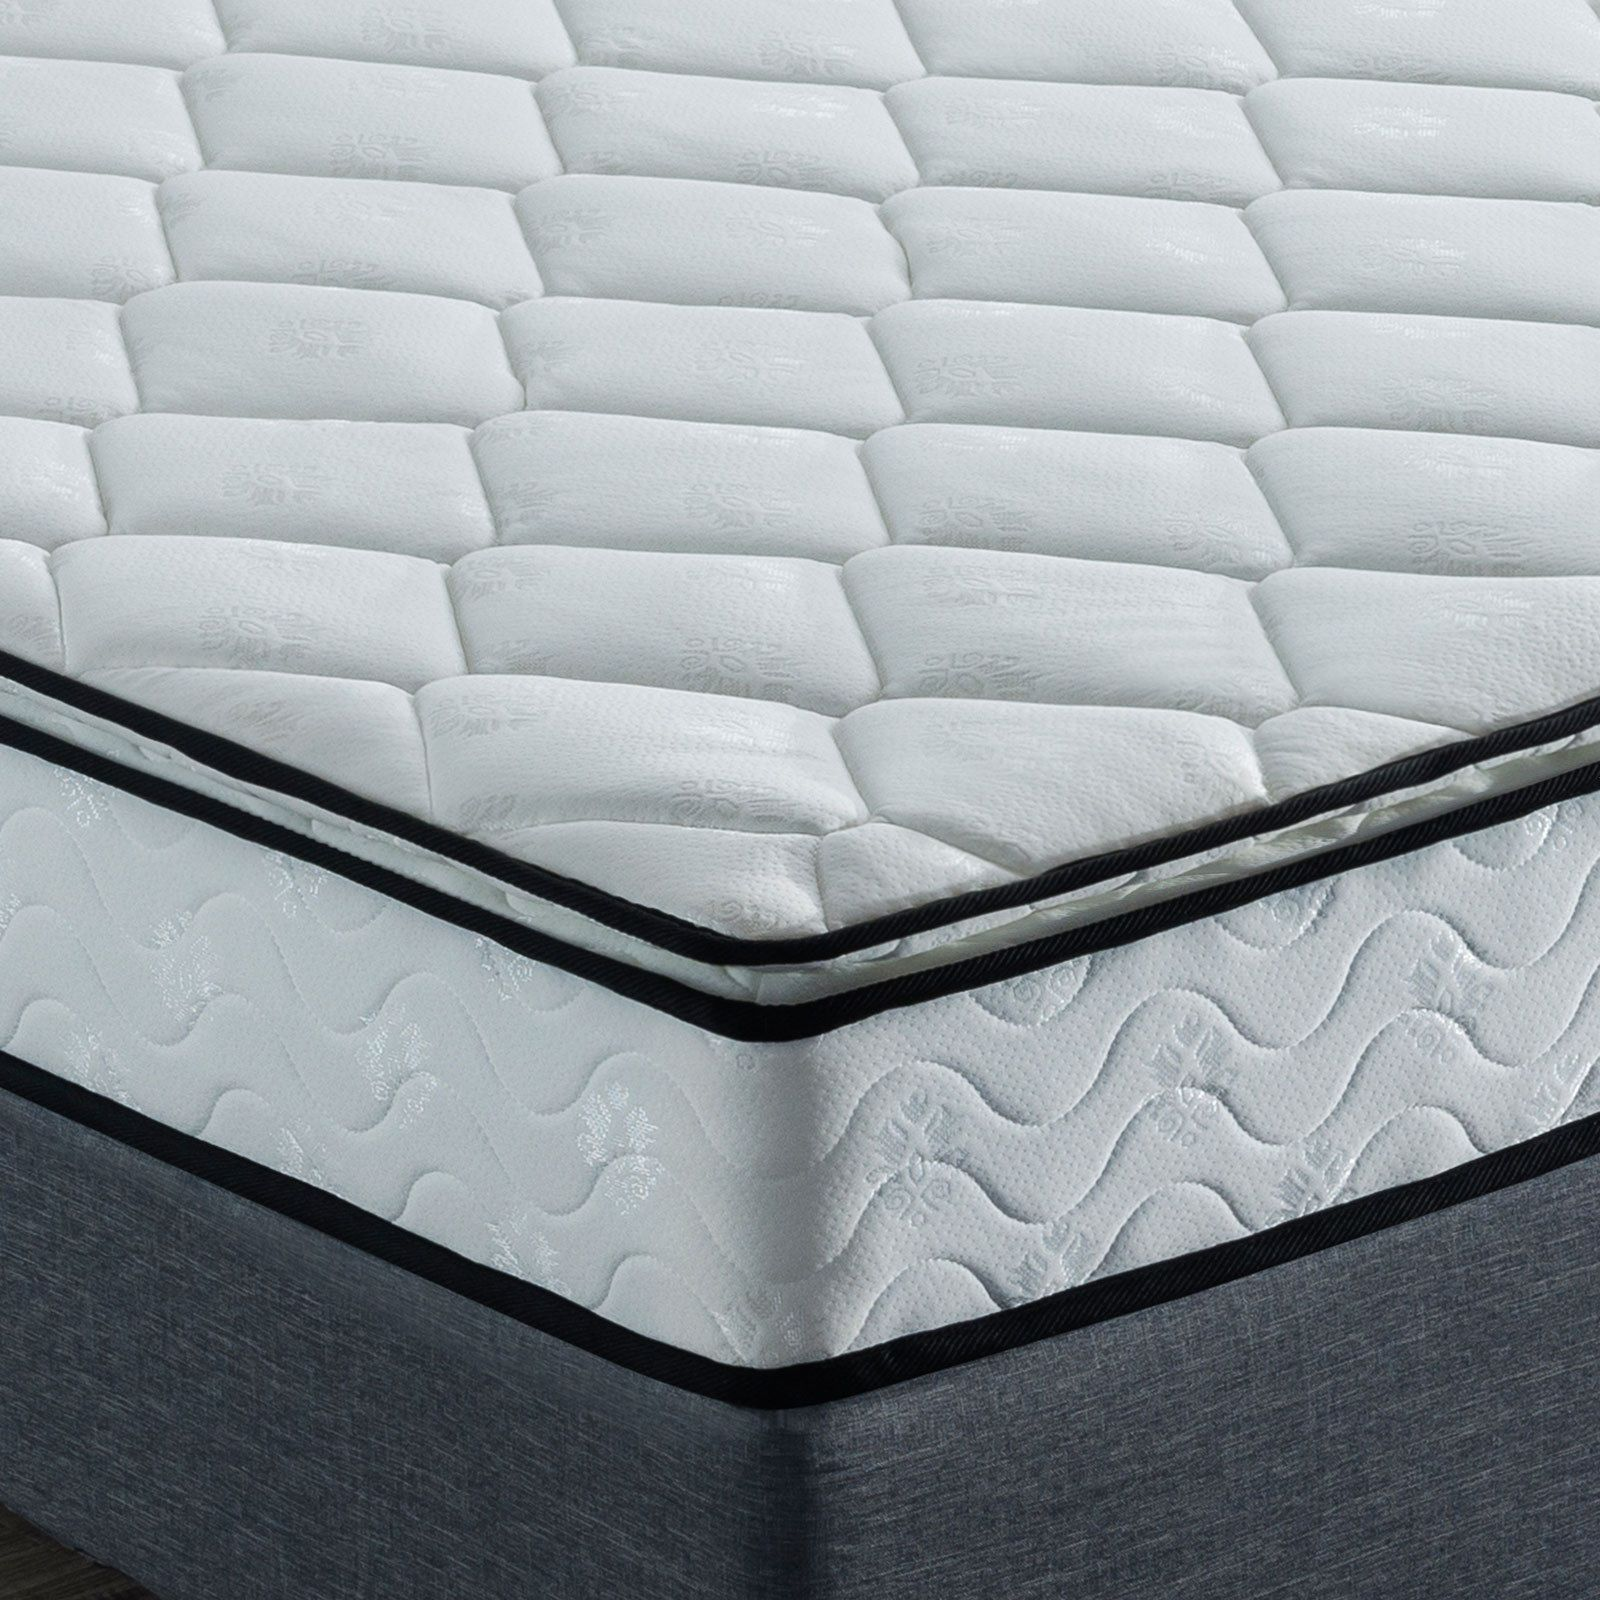 Queen Mattress Pillow Top Double Bed Single King Luxury 7zone